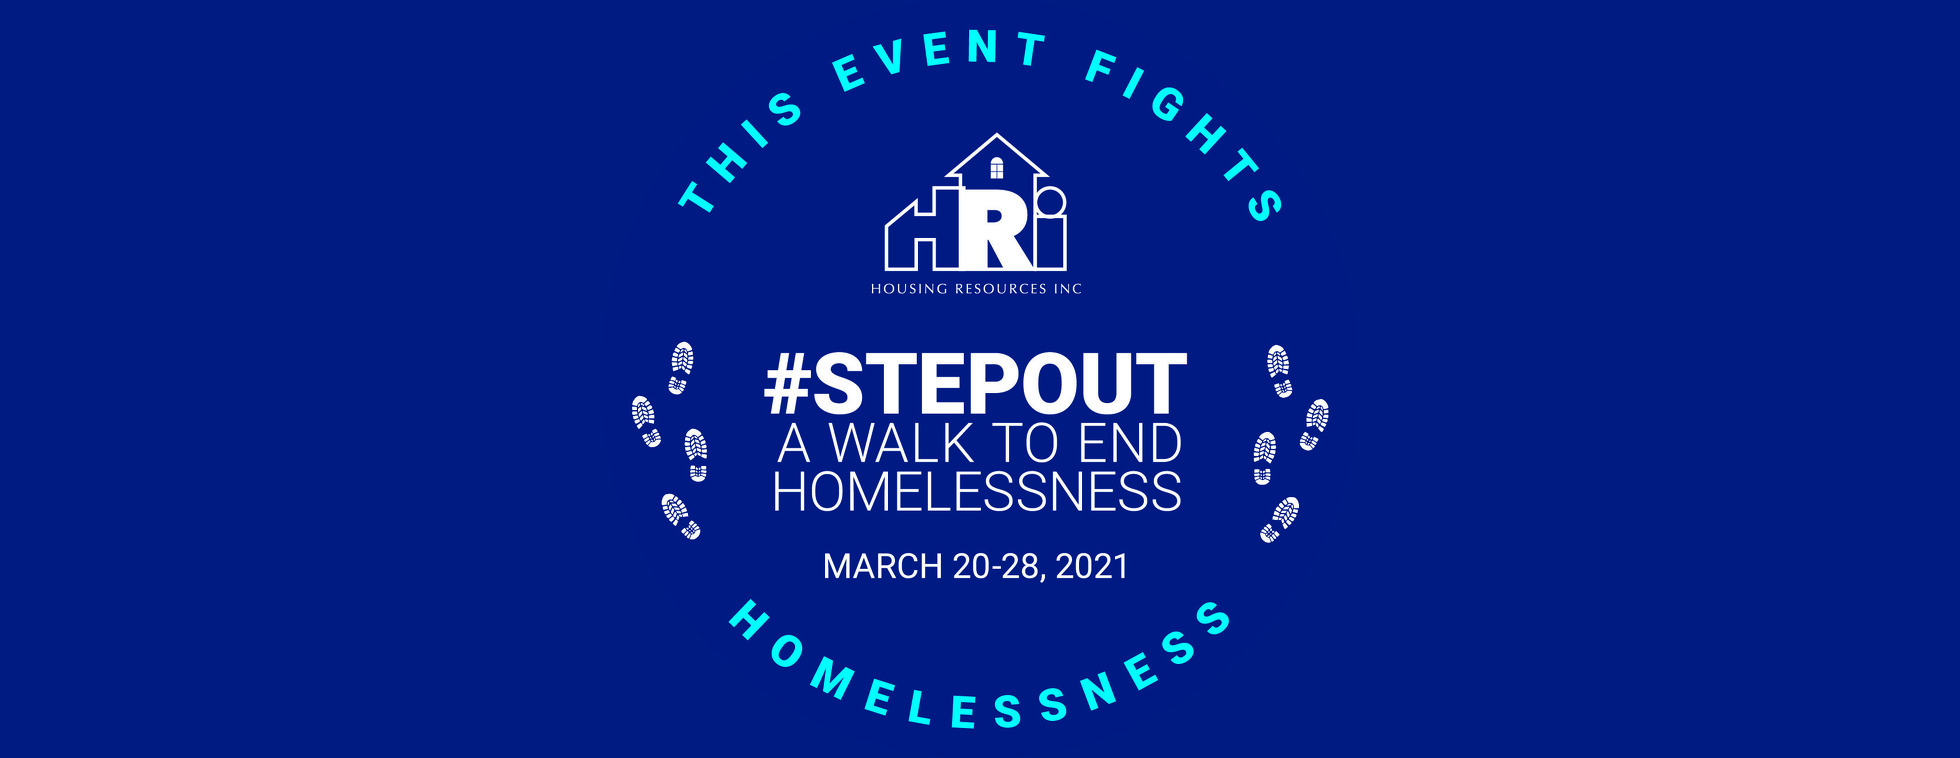 HRI - A Walk to End Homelessness 2021